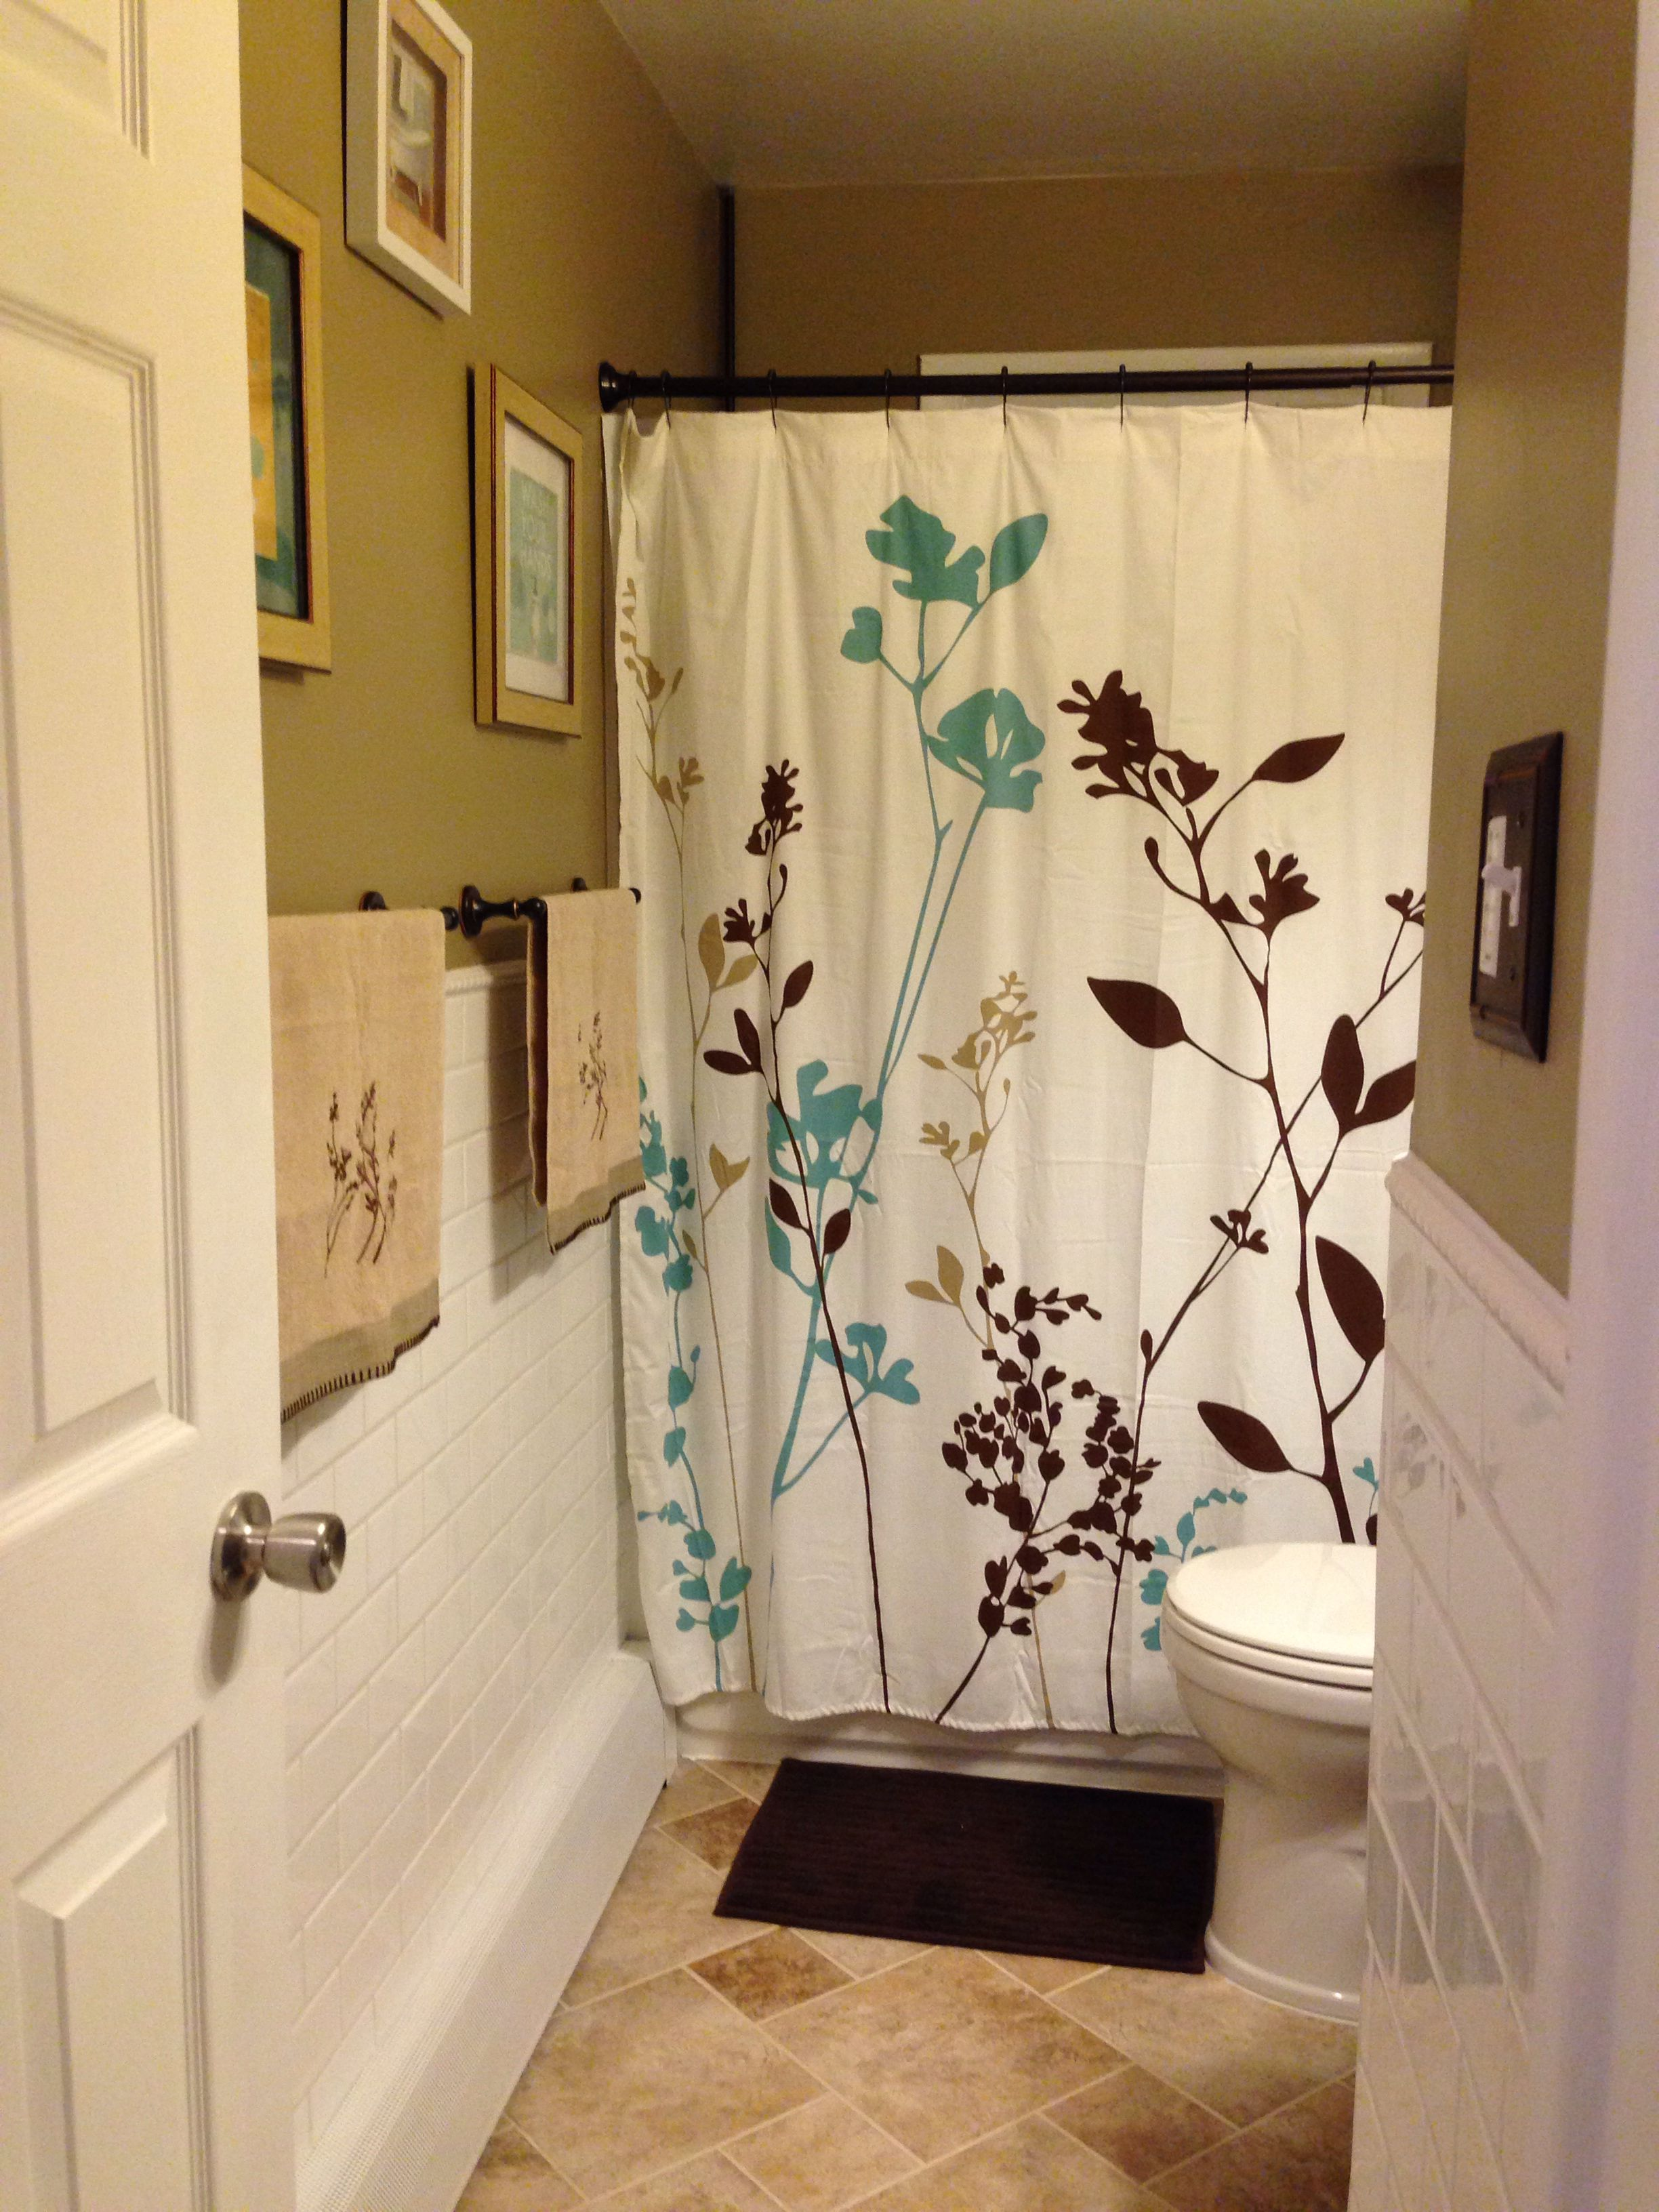 #Remodeled #bathroom. Shower curtain and other #decor from #bedbathandbeyond; vanity, wall and floor tile Lowe's; Home Depot tub and toilet.